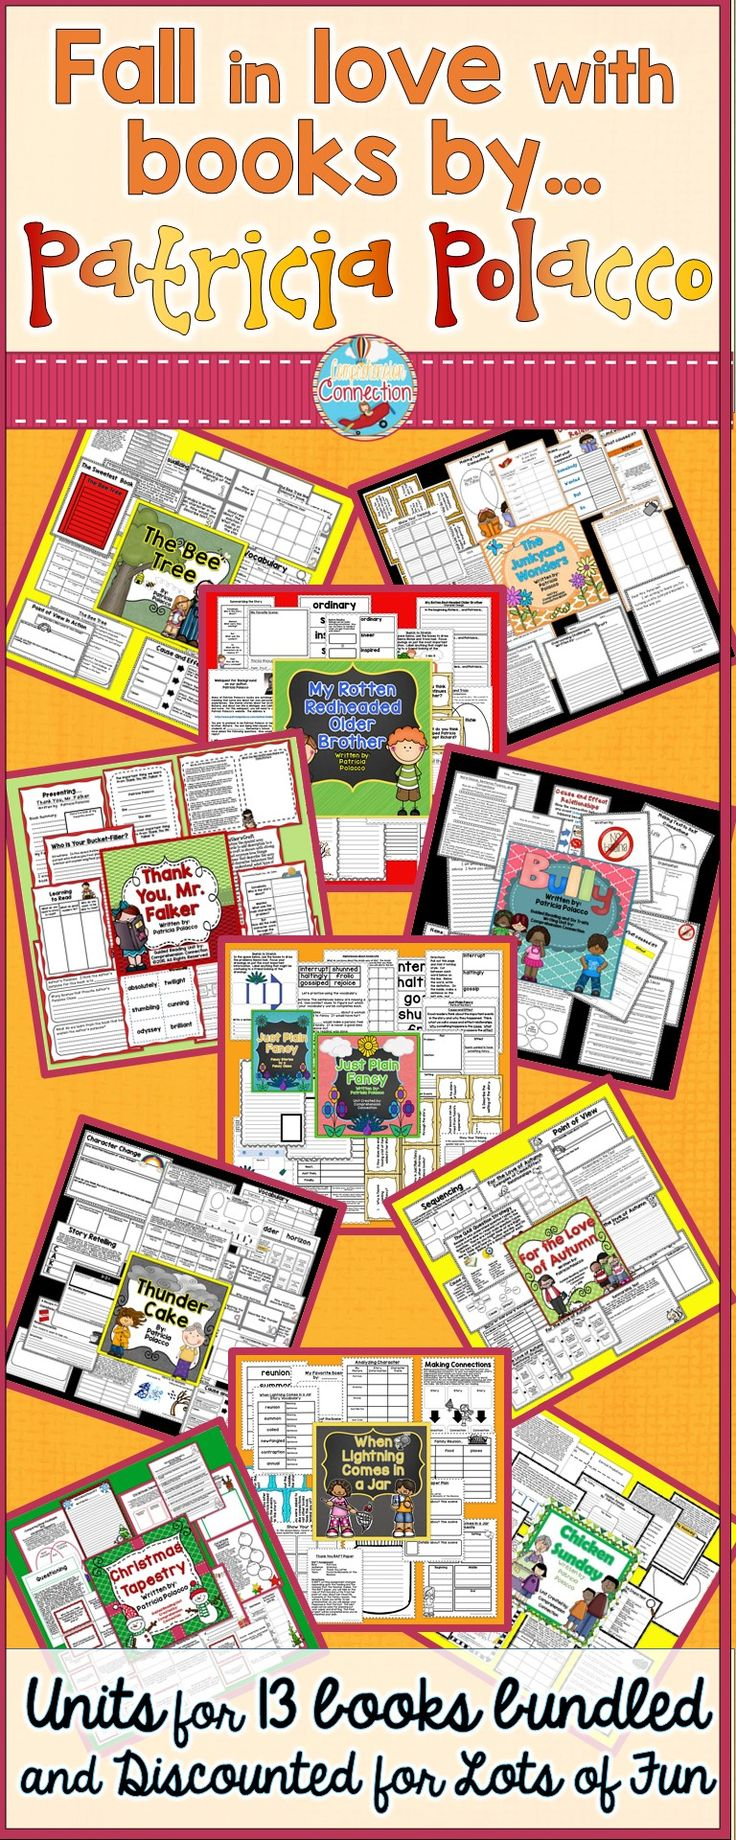 If you teach upper elementary, then you probably love Patricia Polacco. This Patricia Polacco bundle of 13 units includes many of her best selling titles. Teach your students comprehension skills, analyze her writing style, and improve your students writing with one resource. 216 pages (and growing).